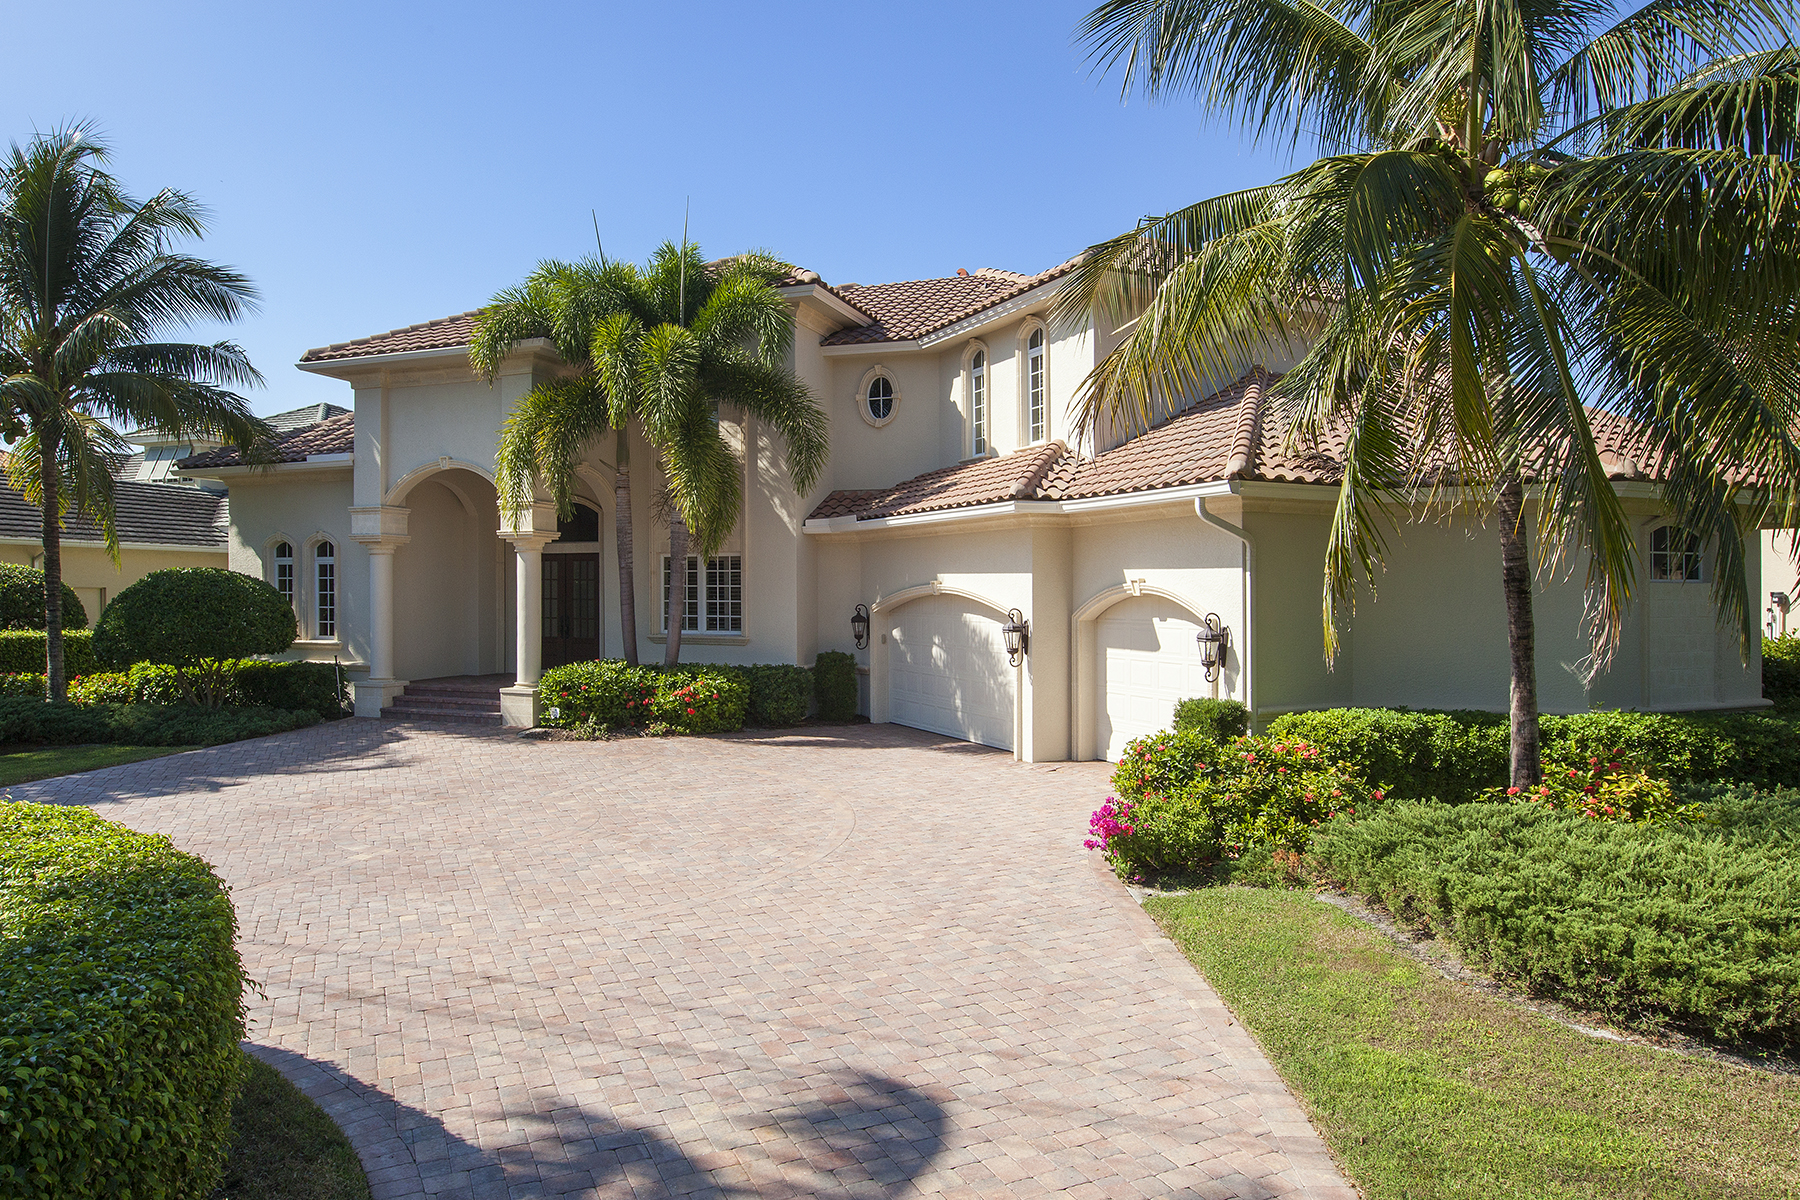 Single Family Home for Sale at MOORINGS 1831 Crayton Rd Naples, Florida, 34102 United States